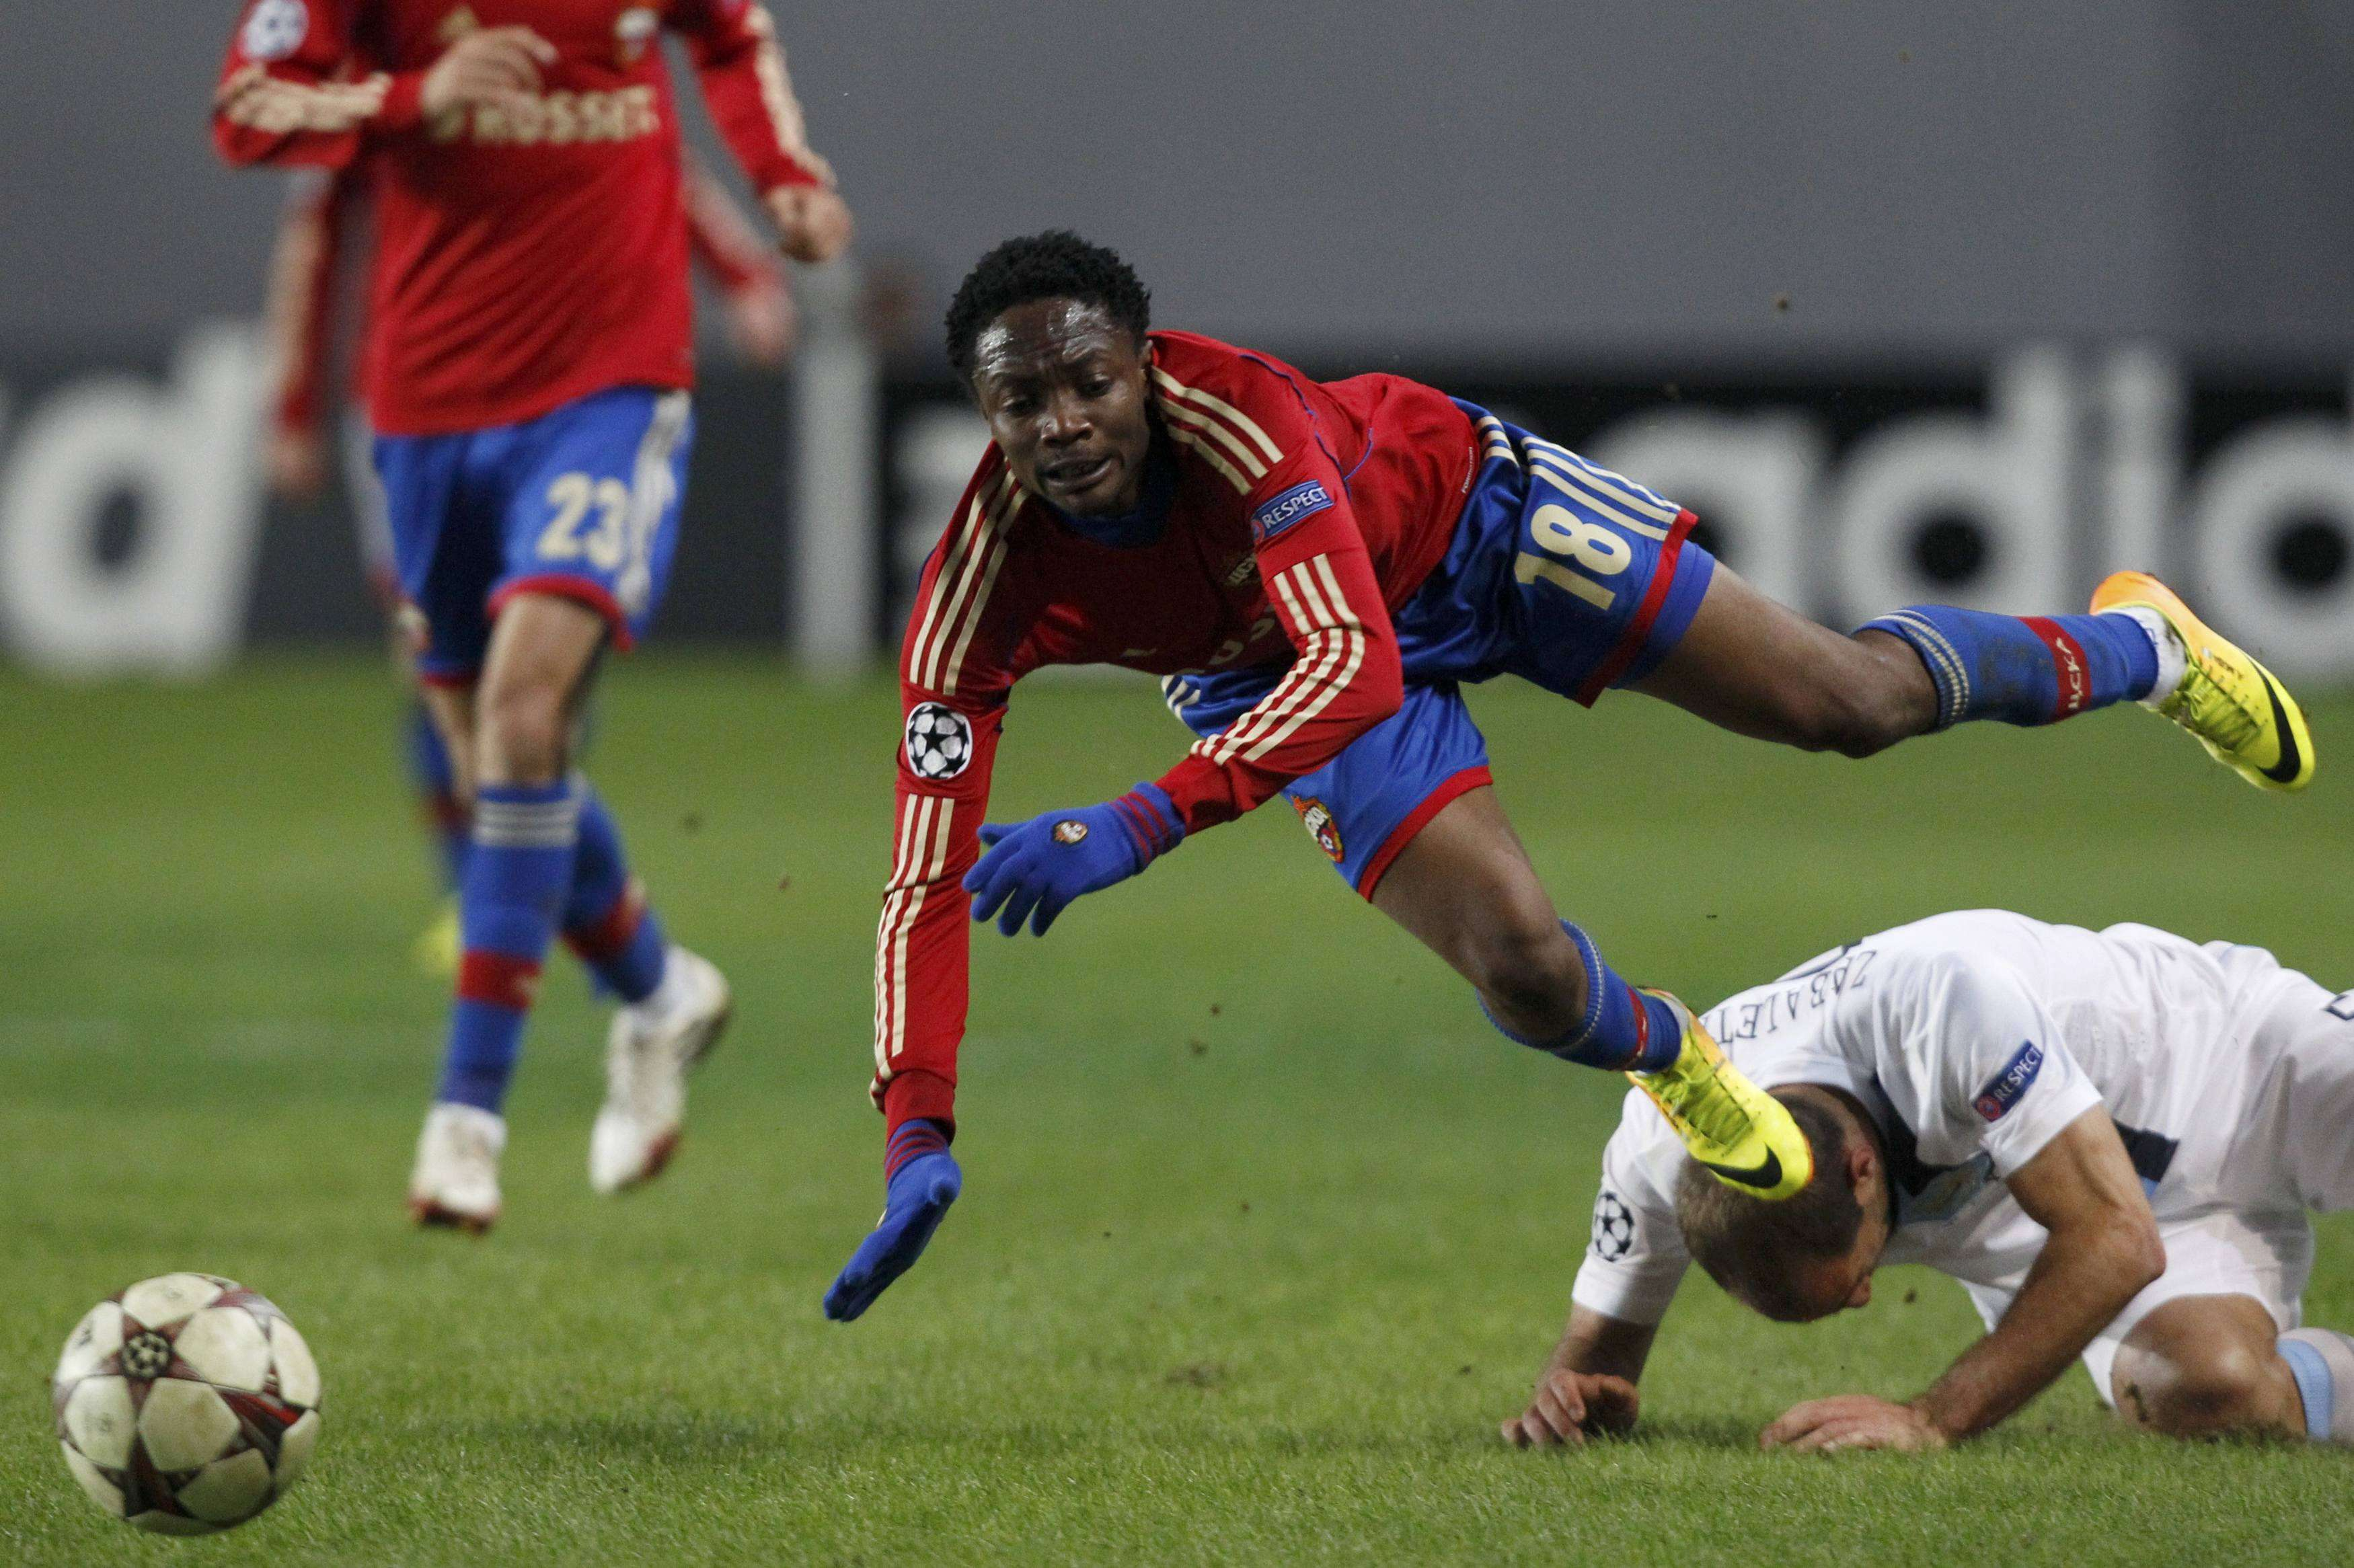 CSKA Moscow's Ahmed Musa (L) is tackled by Manchester City's Pablo Zabaleta during their Champions League soccer match at the Arena Khimki outside Moscow, October 23, 2013. REUTERS/Maxim Shemetov (RUSSIA - Tags: SPORT SOCCER) Foto: MAXIM SHEMETOV/REUTERS